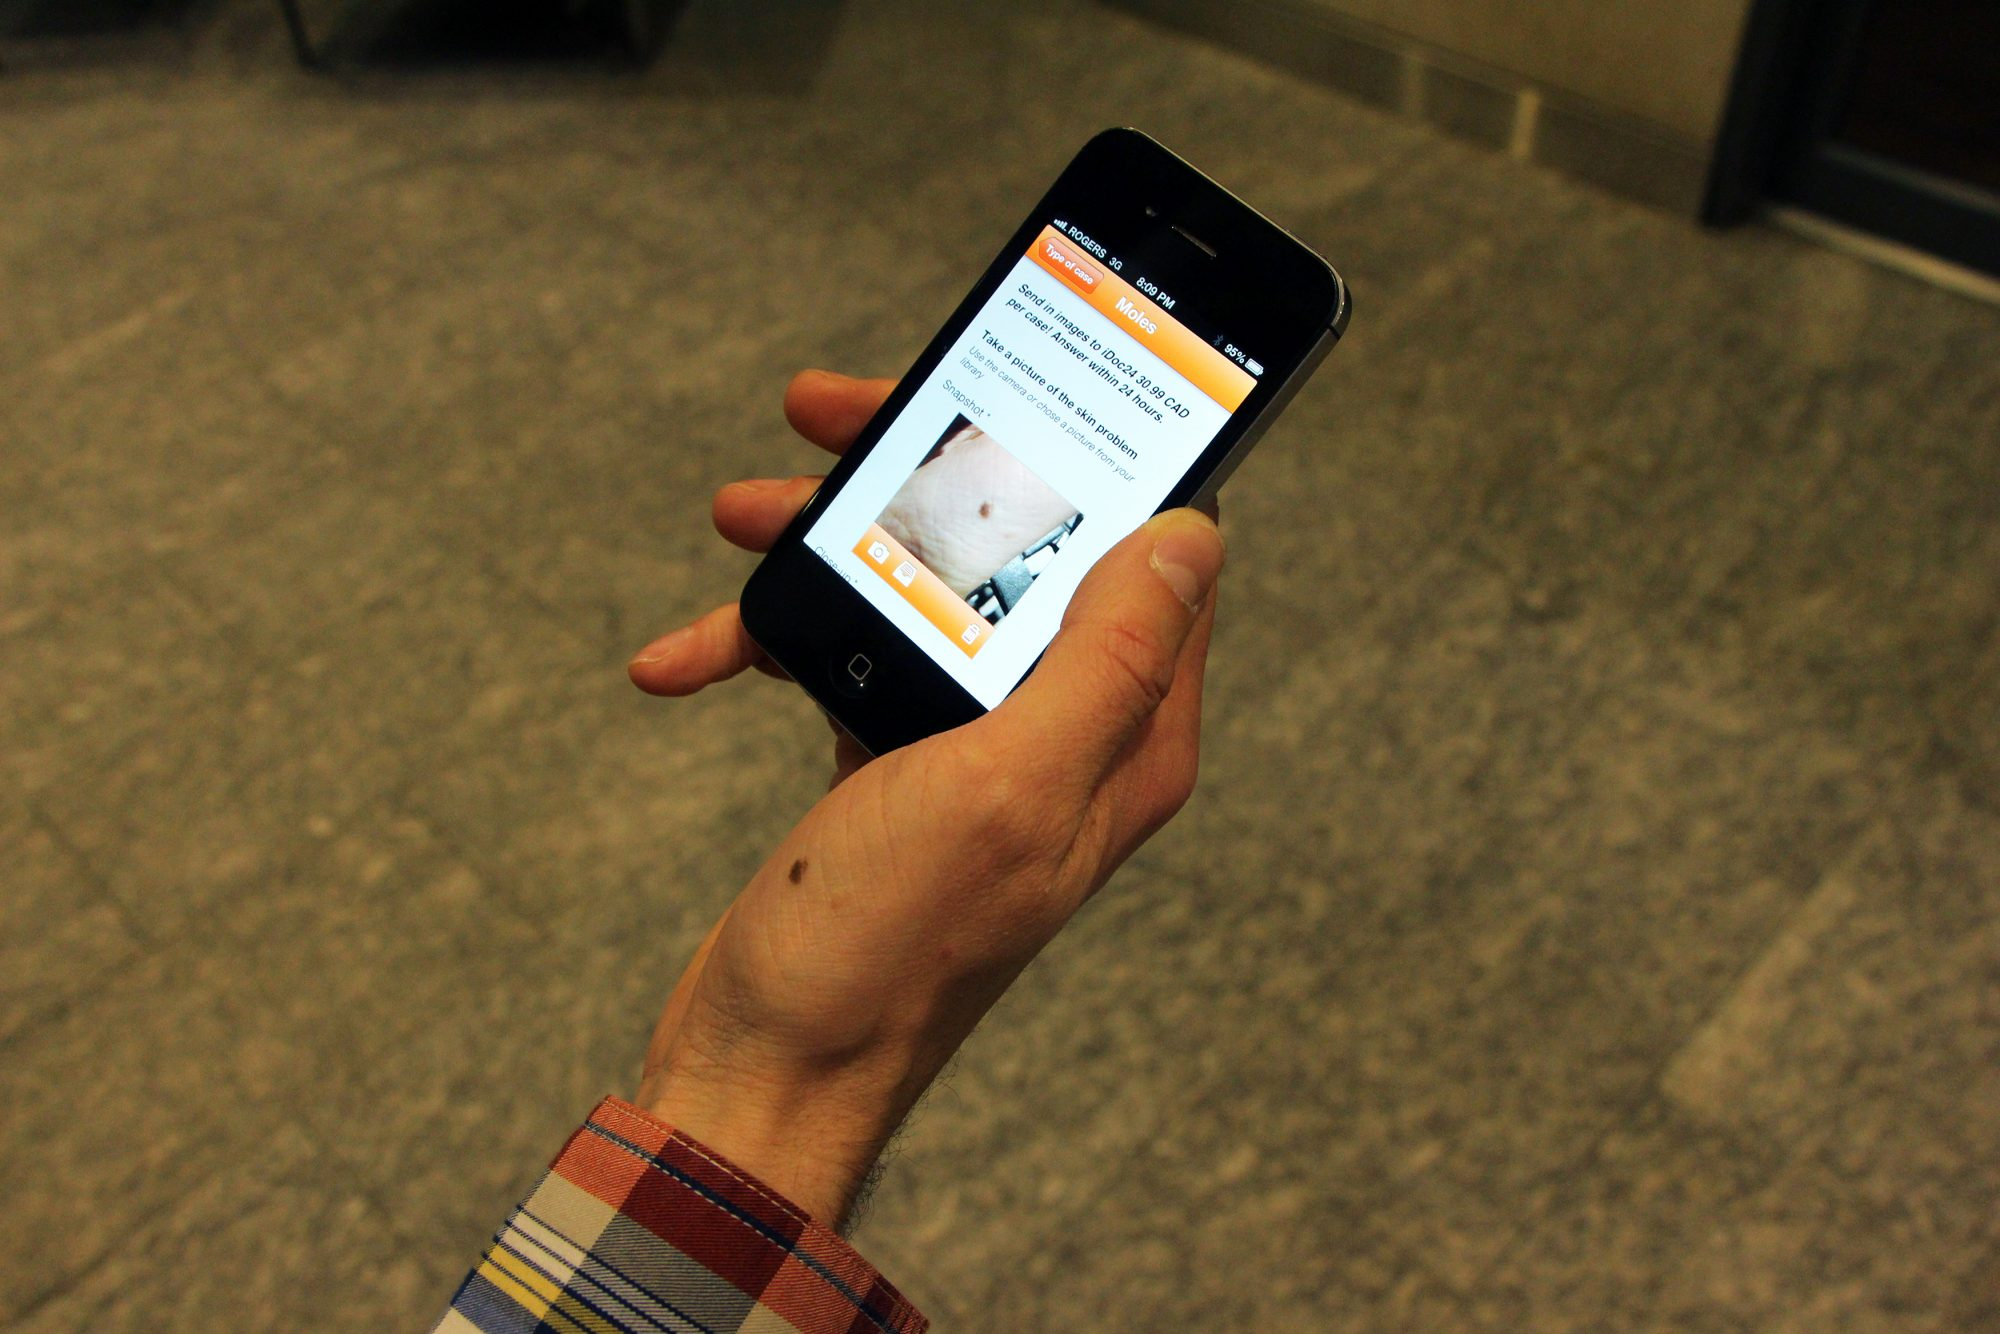 Submitting a photo to a licensed dermatologist for an assessment via the iDoc24 app. Photo by Maria Karpenko.